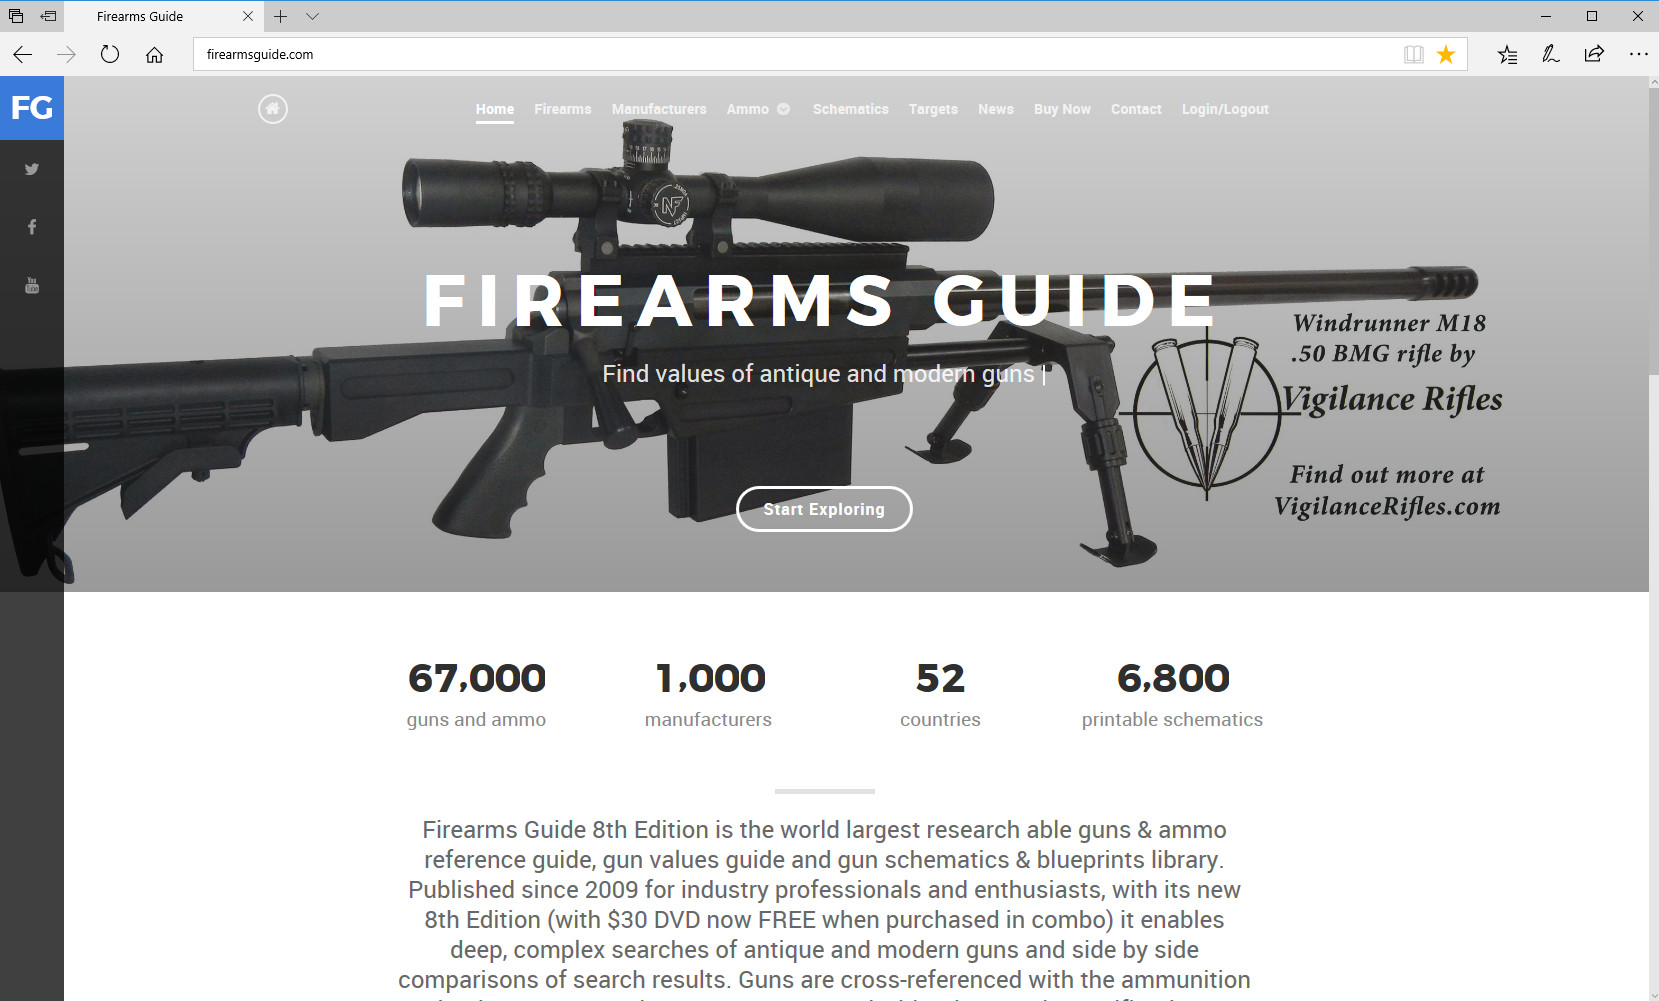 Firearms Guide Gun Diagrams 1911 Mil Spec Including Parts Diagram List Please See Example Of Vigilance Rifles Sponsored Cover Page With Its Windrunner M18 Rifle Below